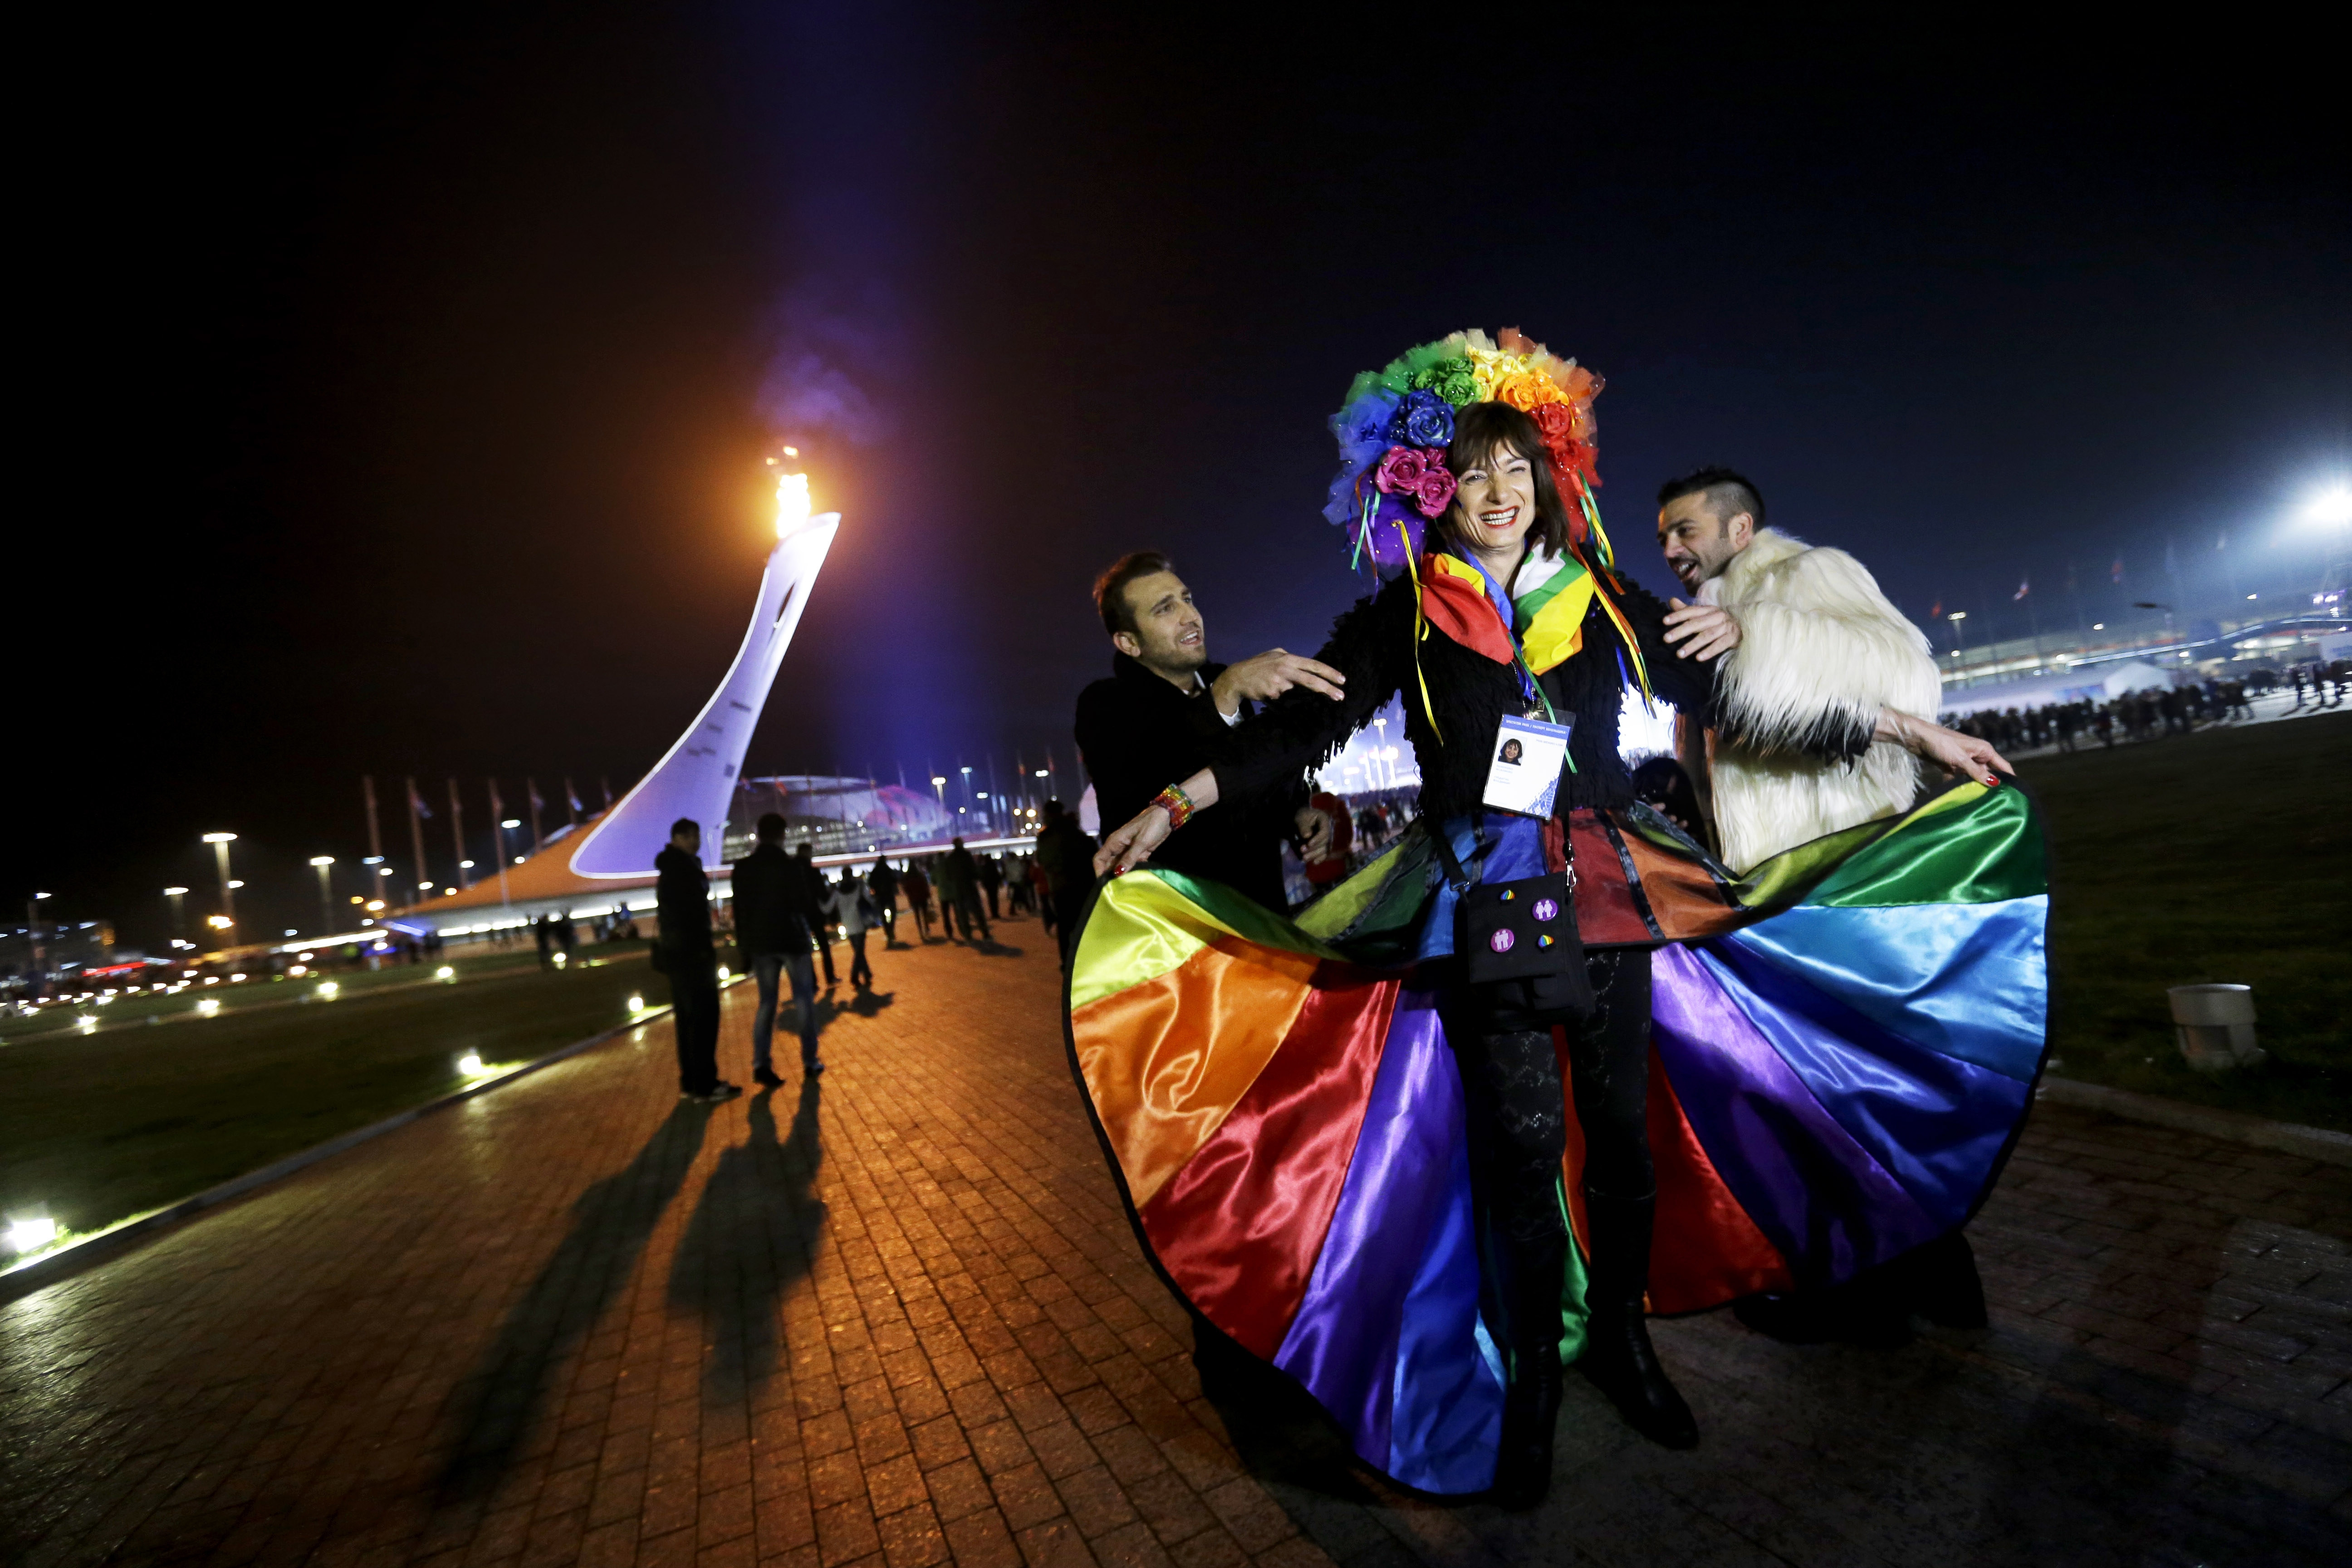 Vladimir Luxuria, center, a former lawmaker in Italy and a crusader for transgender rights, wore a rainbow cape while trying to enter Shayba Arena in Sochi, Russia.